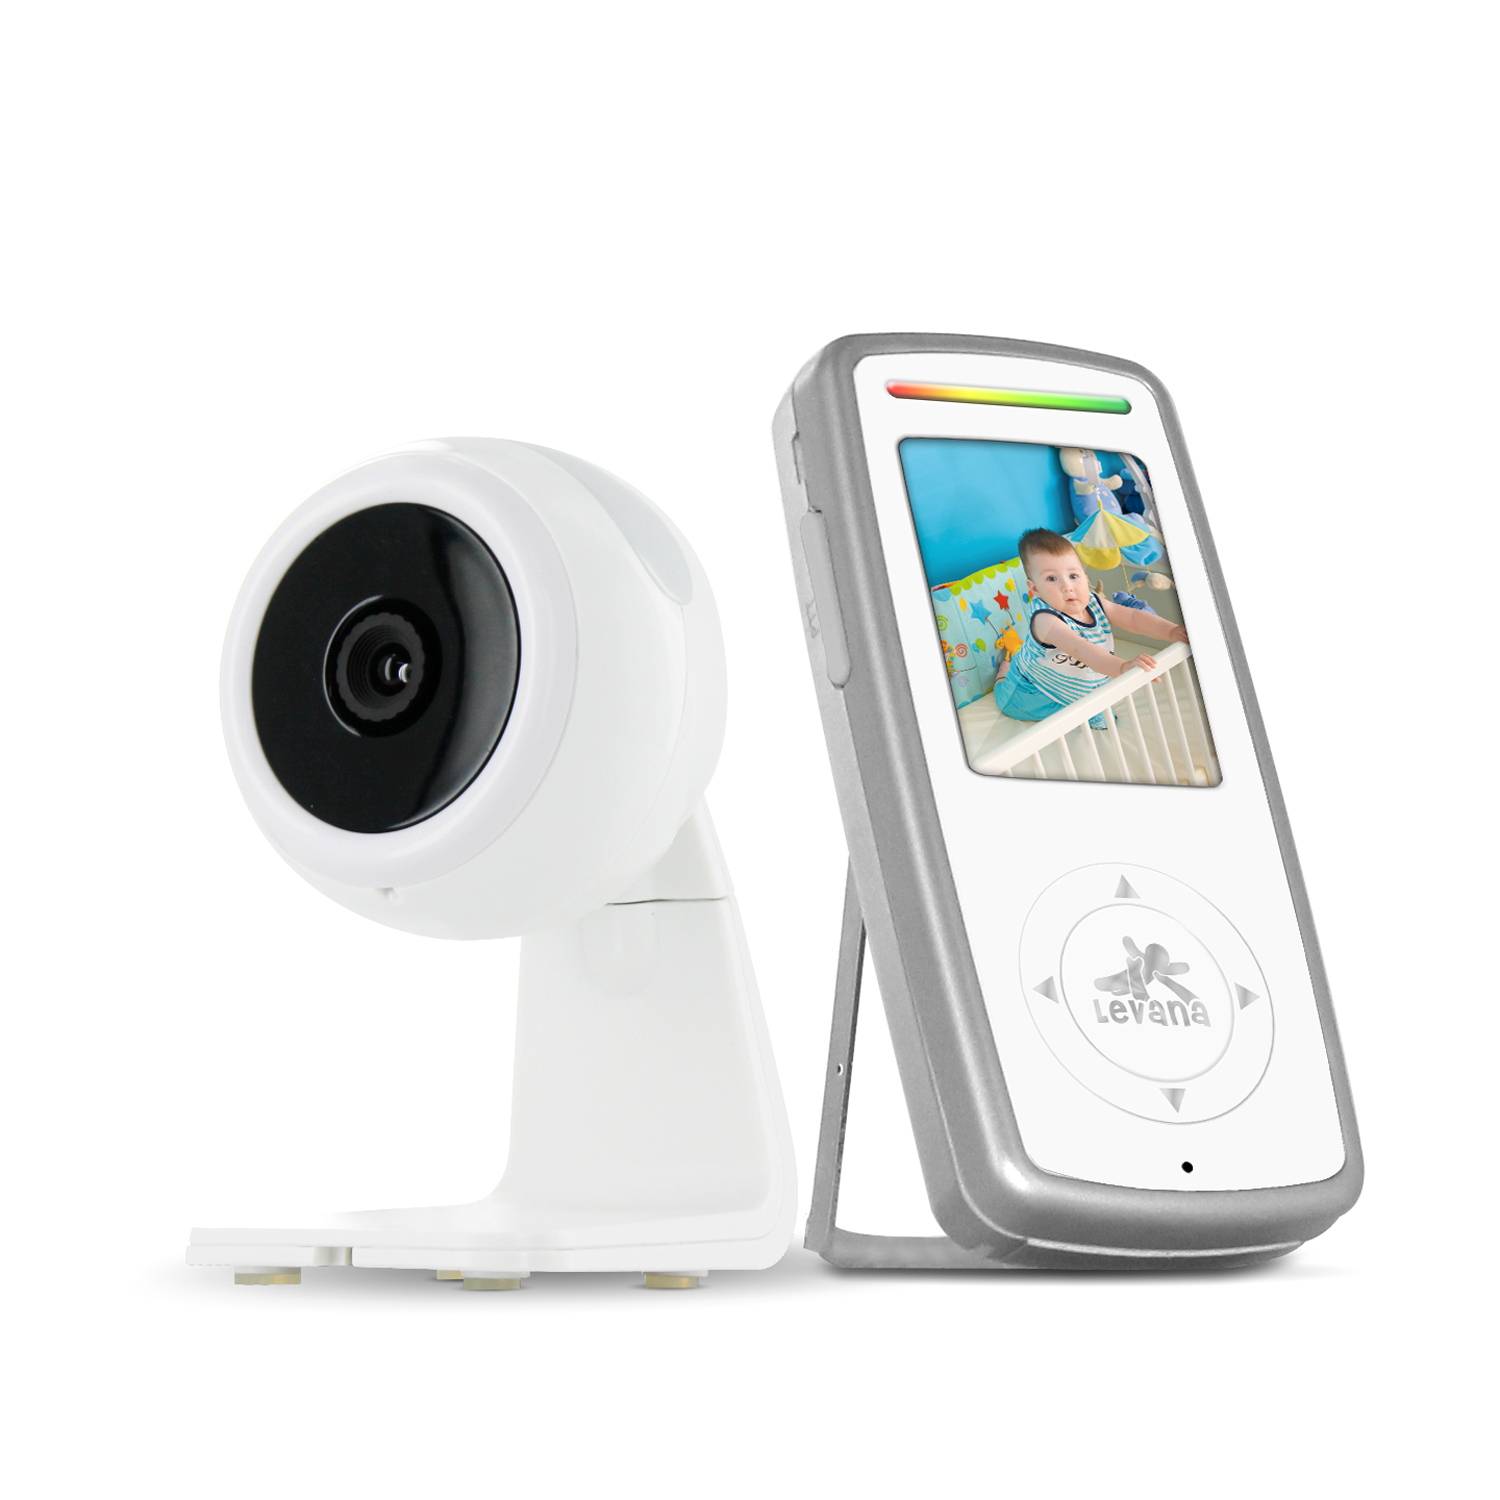 Levana ERA Elite 32103 2.4-Inch Digital Wireless Video Baby Monitor with Zoom and Video Recording at Sears.com